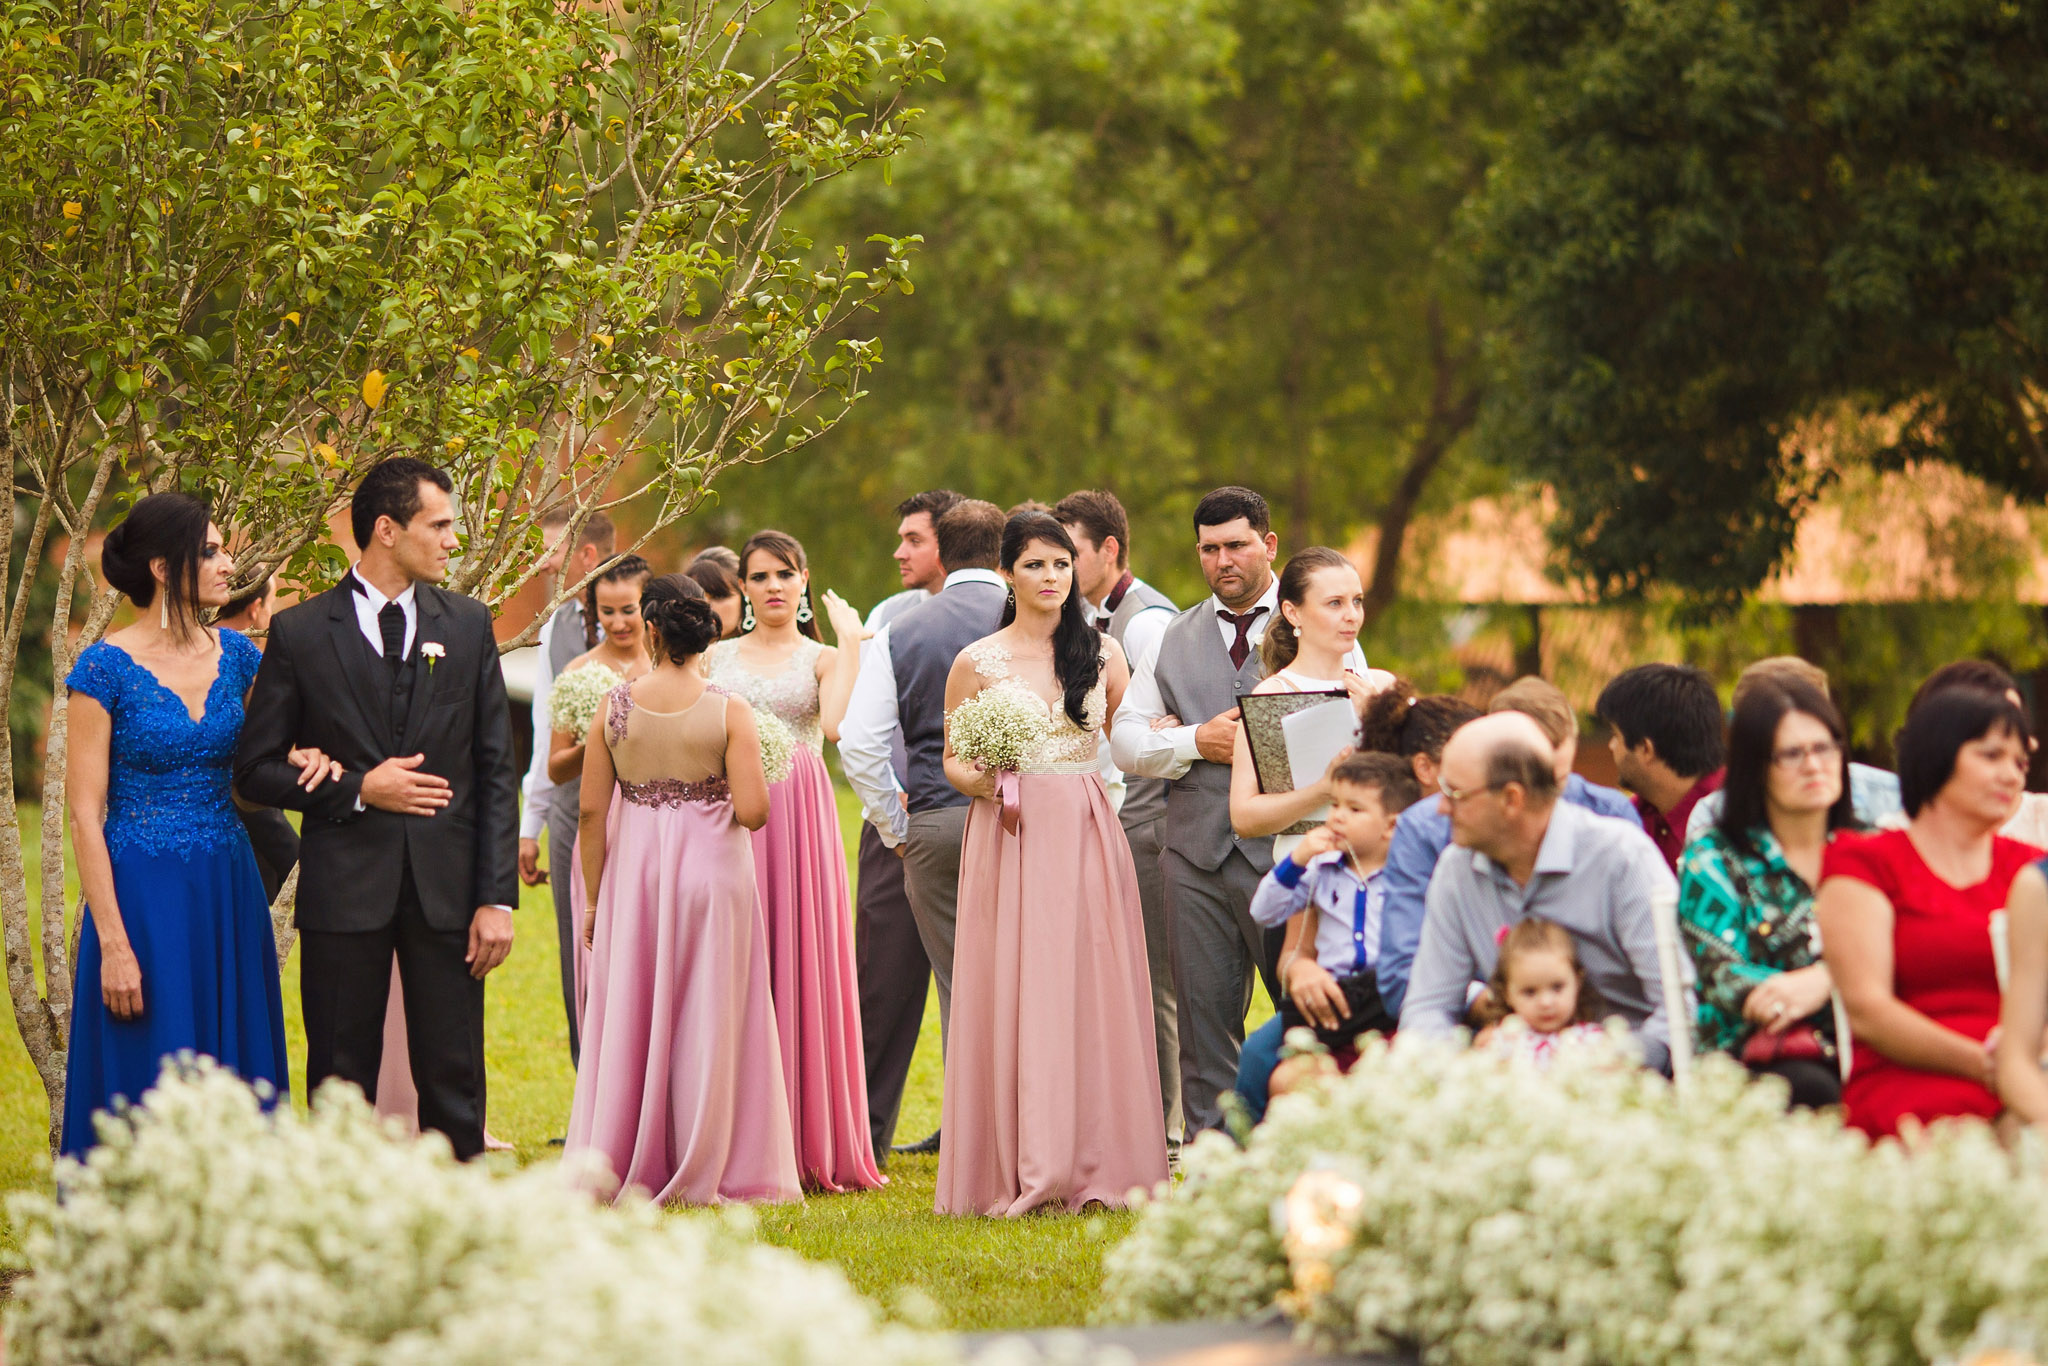 Bridesmaids and groomsmen getting ready.